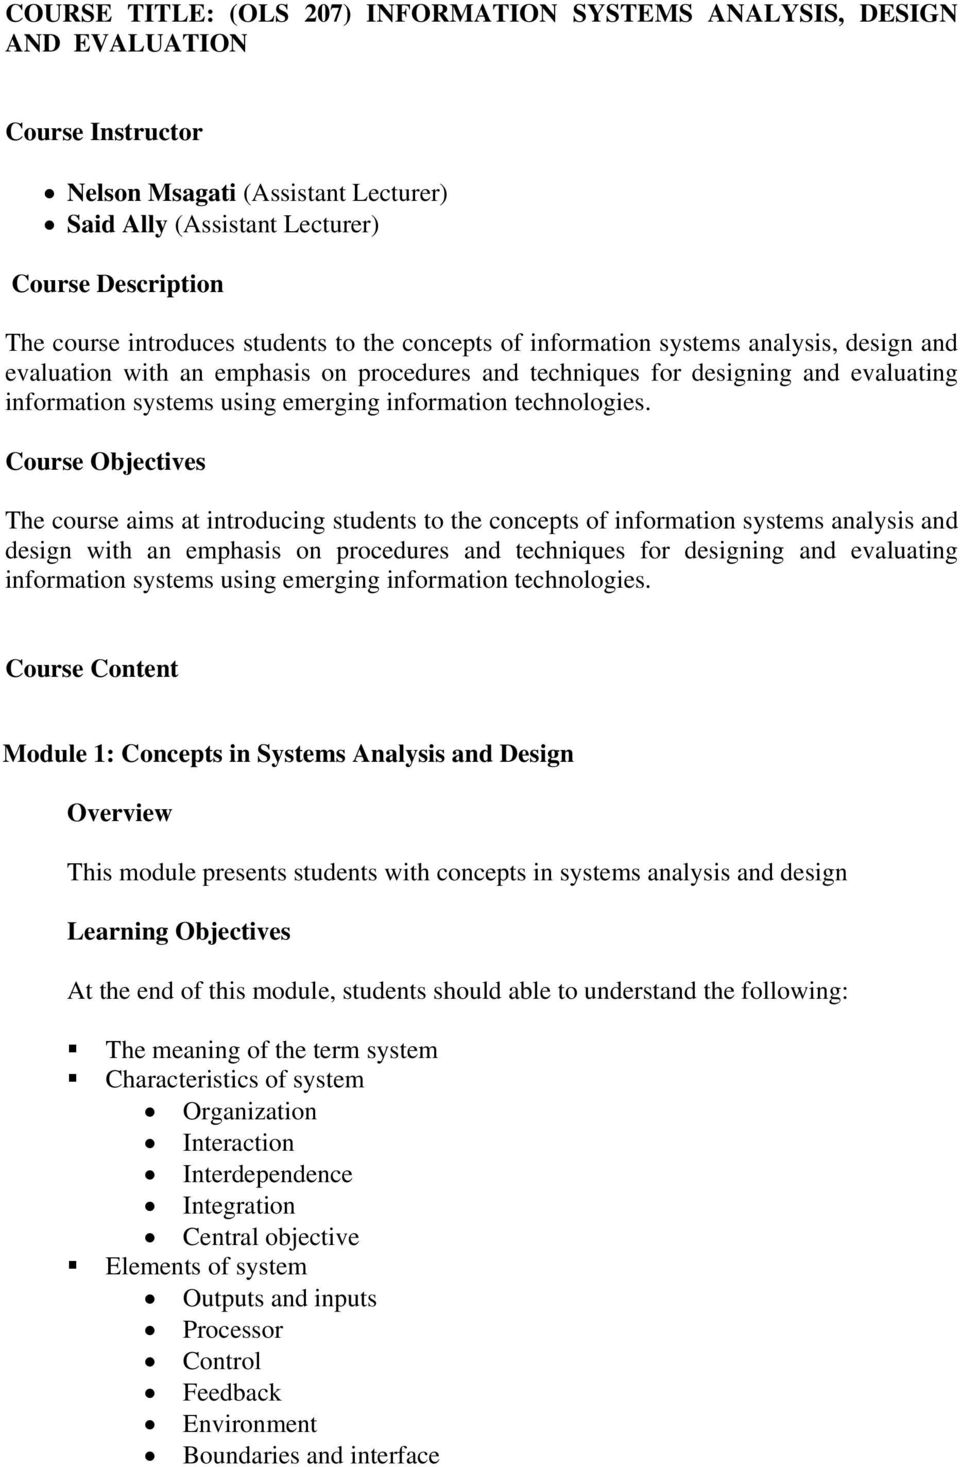 Course Title Ols 207 Information Systems Analysis Design And Evaluation Pdf Free Download